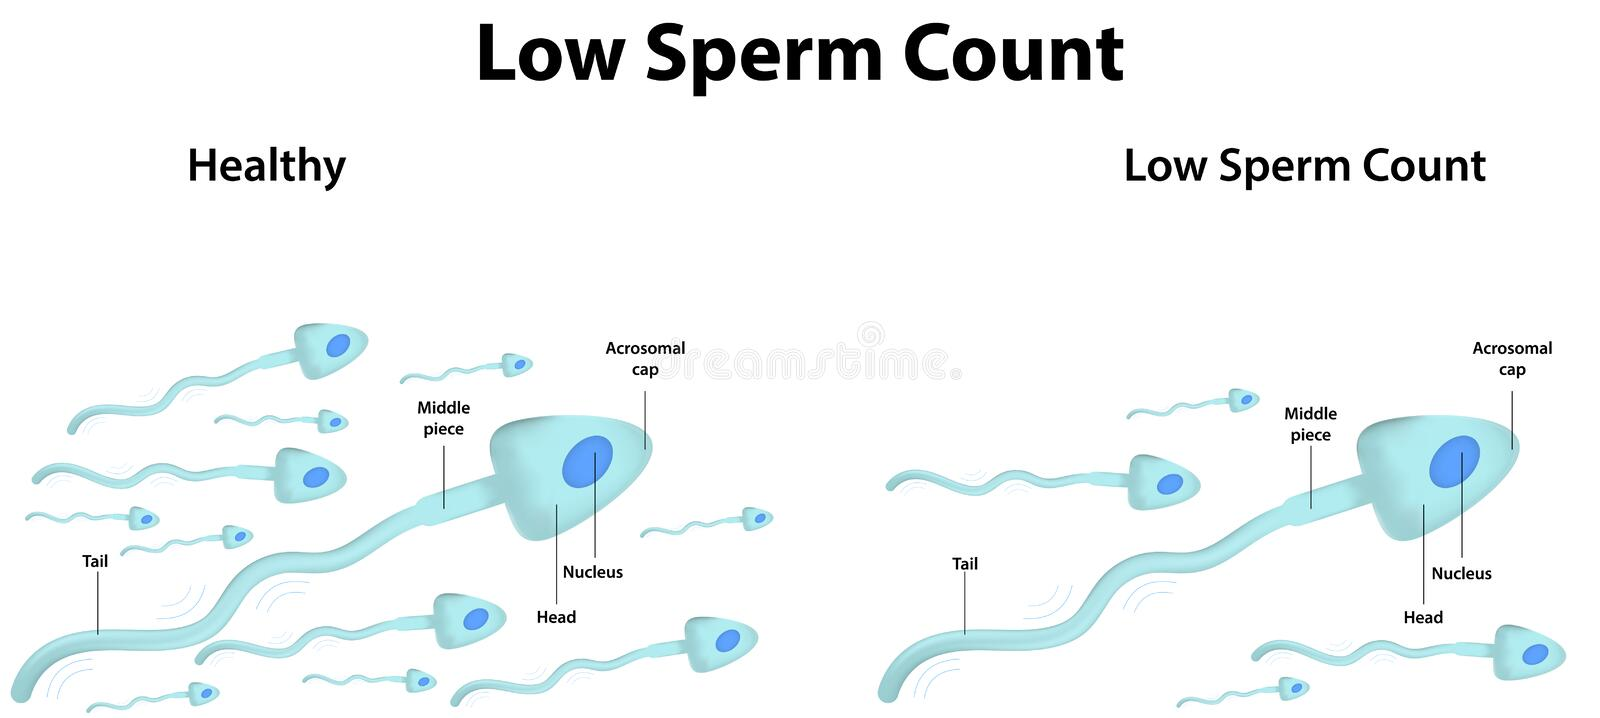 Sperm count and infertility